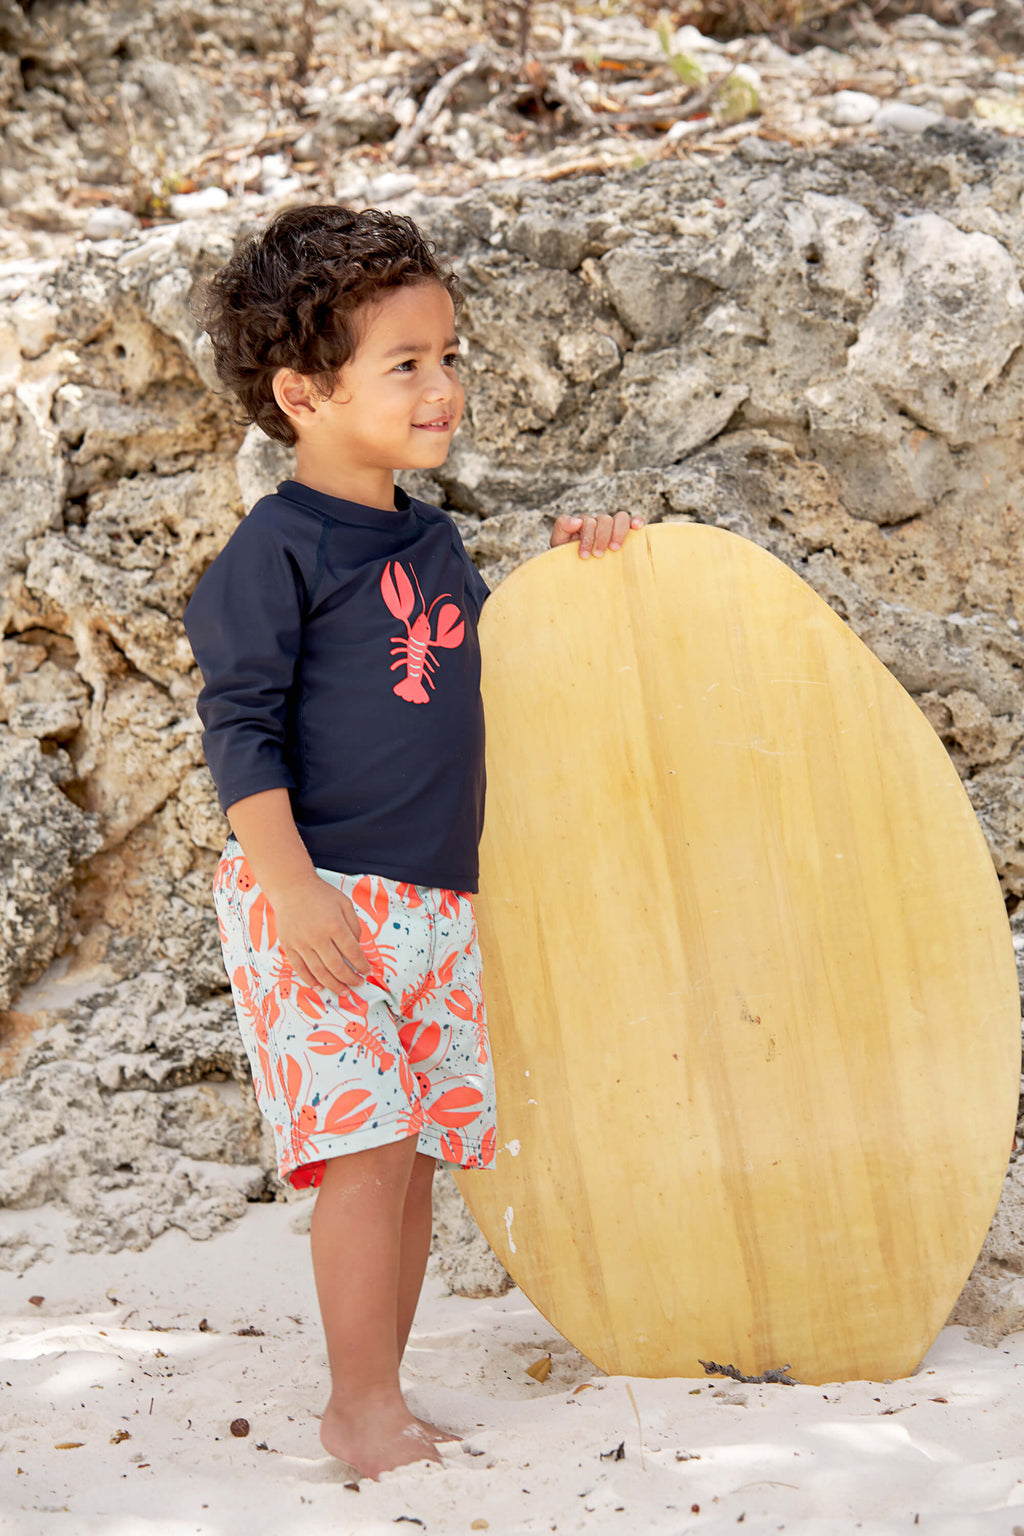 Lassig Board Shorts and Rash Guard Set - Lobsters